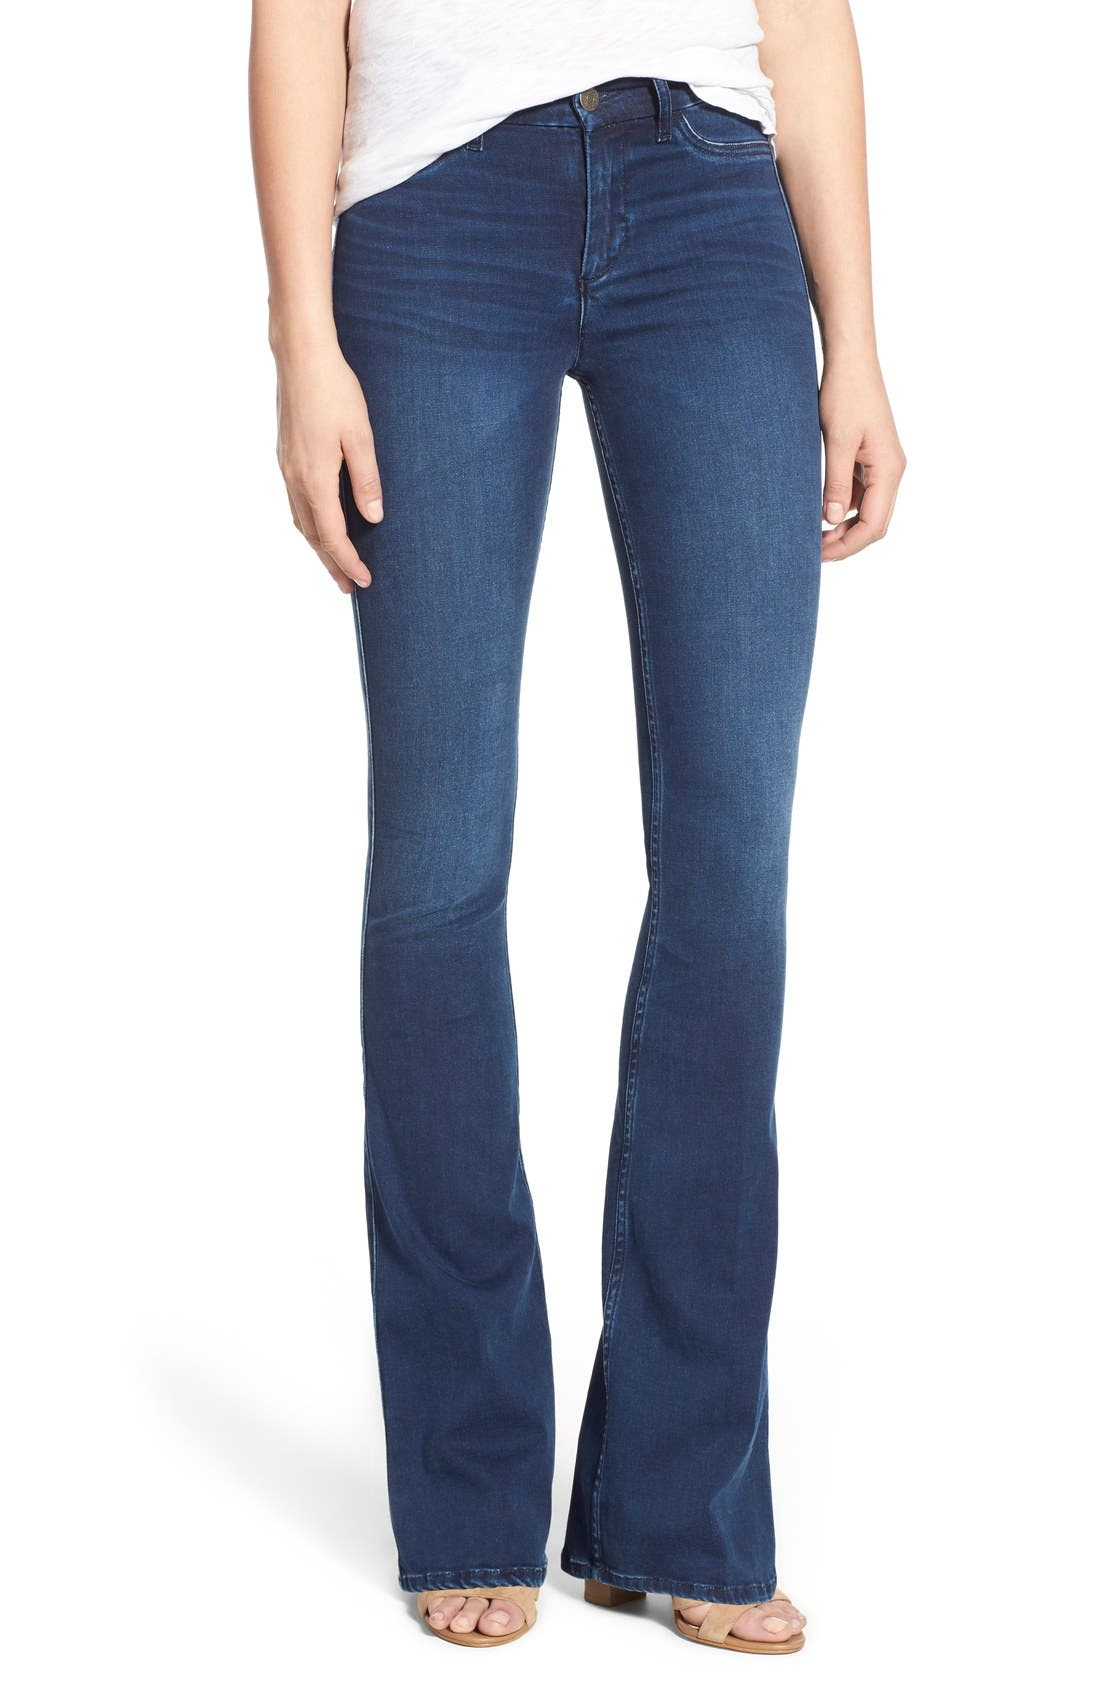 Alternate Image 1 Selected - M.i.h. Jeans 'Superfit Marrakesh' Flare Jeans (Circle Blue)